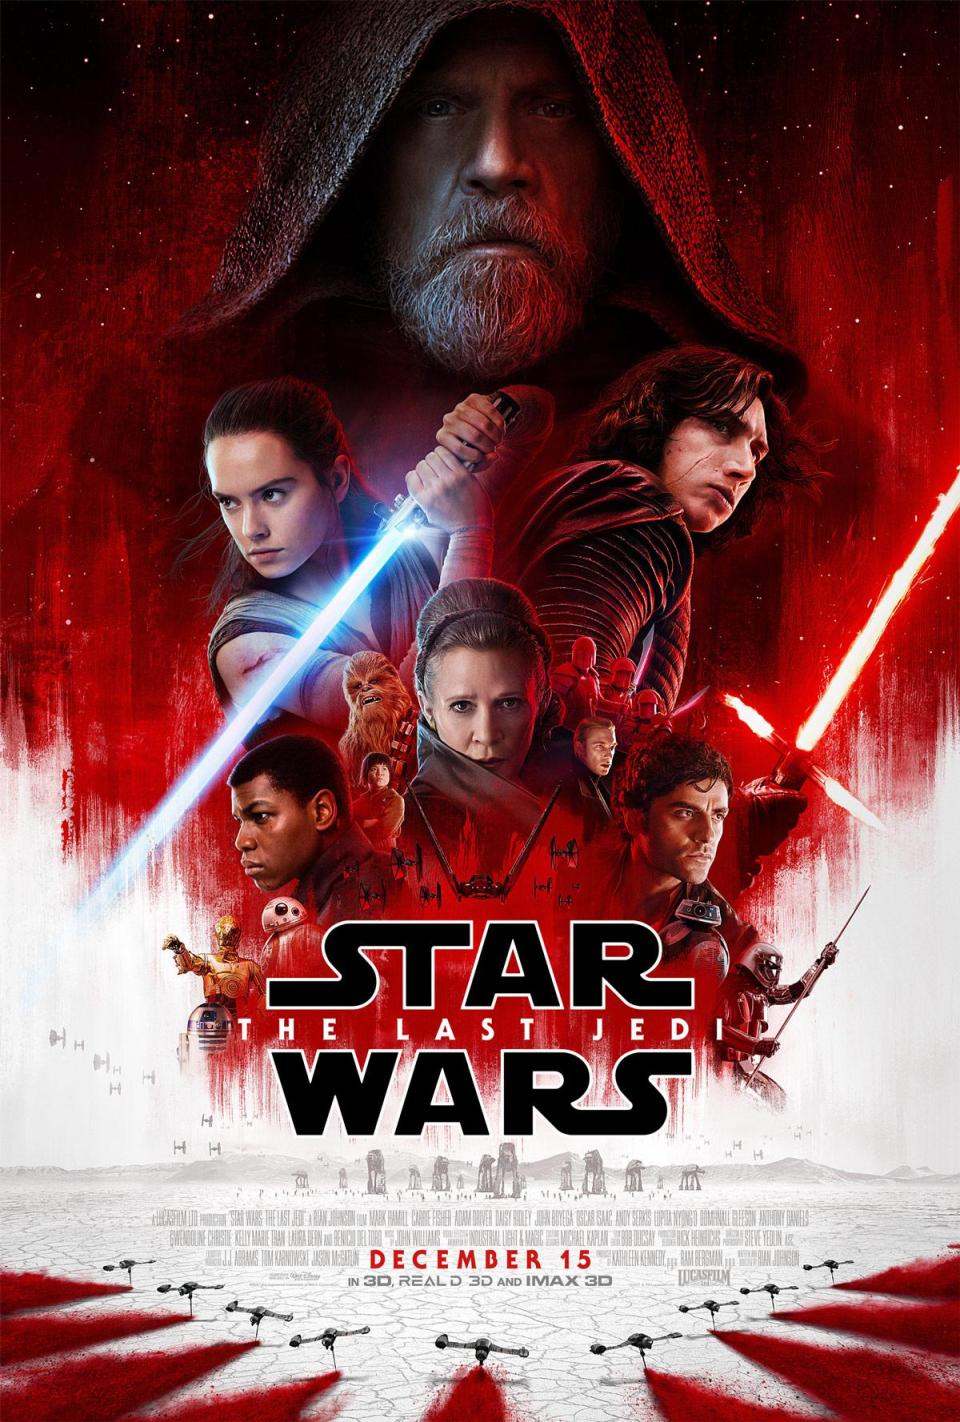 Darth Vader's Shadow Looms Large In Star Wars: The Last Jedi's New Poster